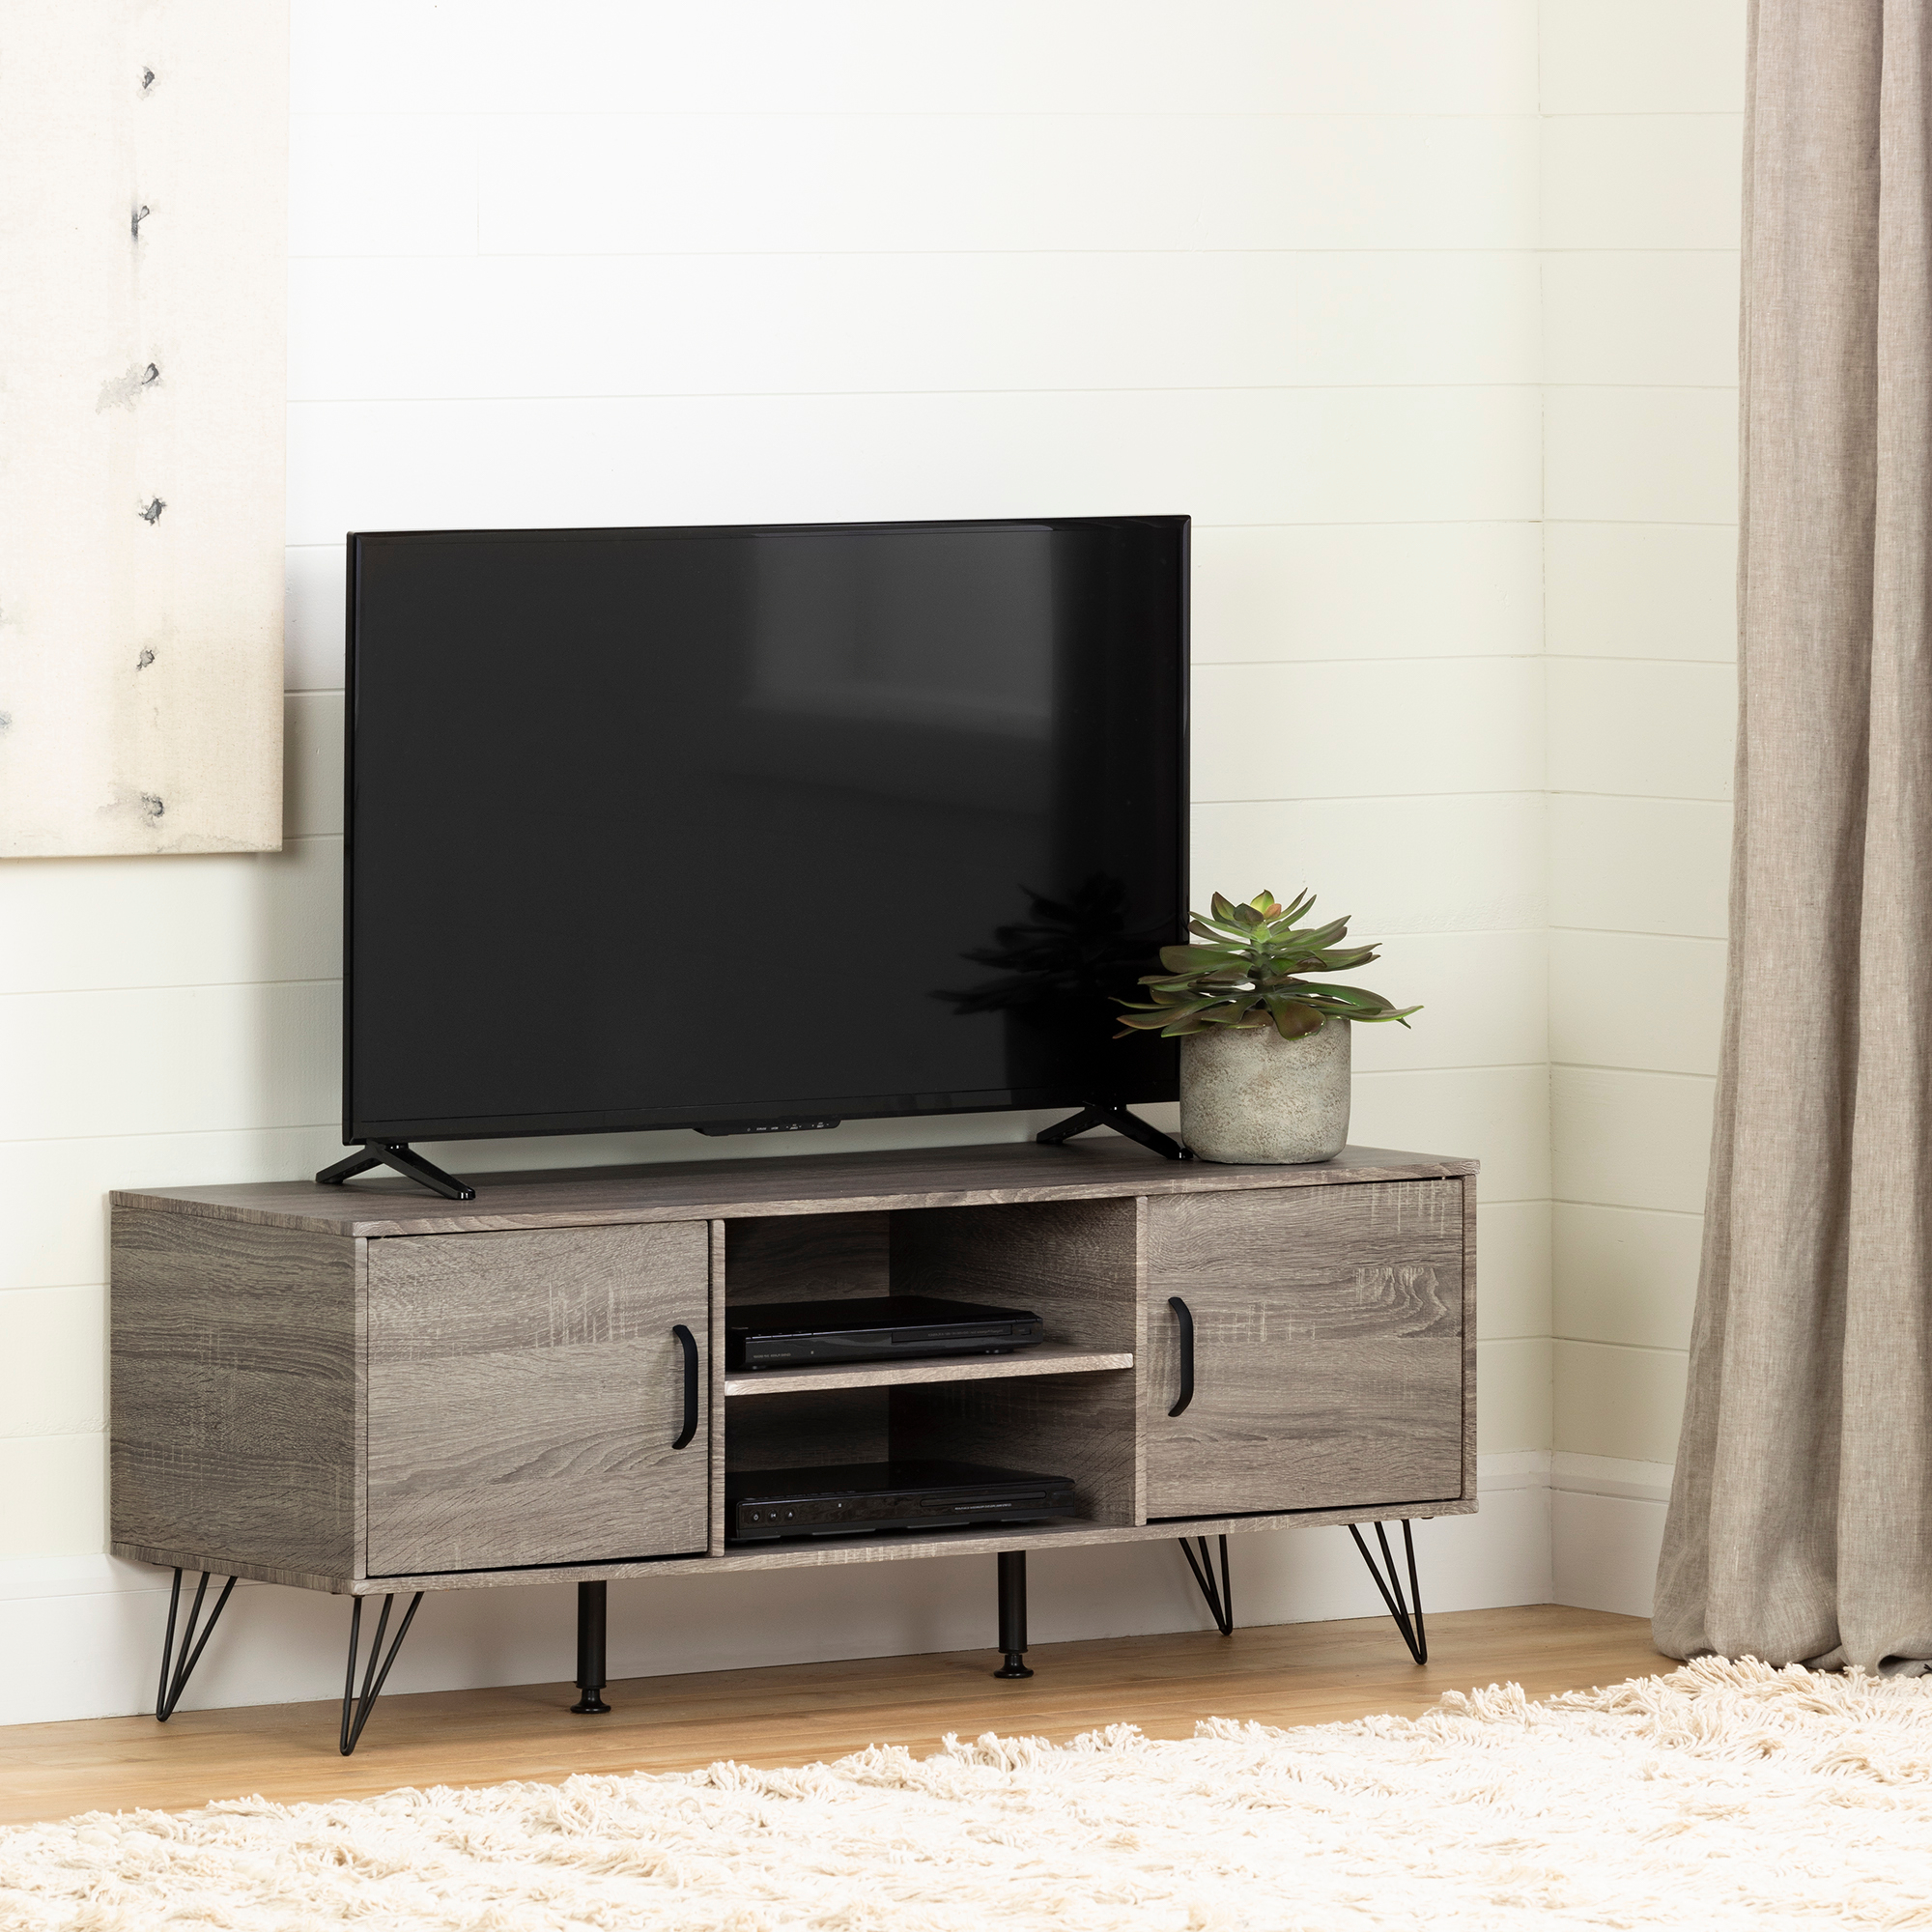 South Shore Evane Tv Stand With Doors For Tvs Up To 55 Intended For South Shore Evane Tv Stands With Doors In Oak Camel (View 2 of 20)